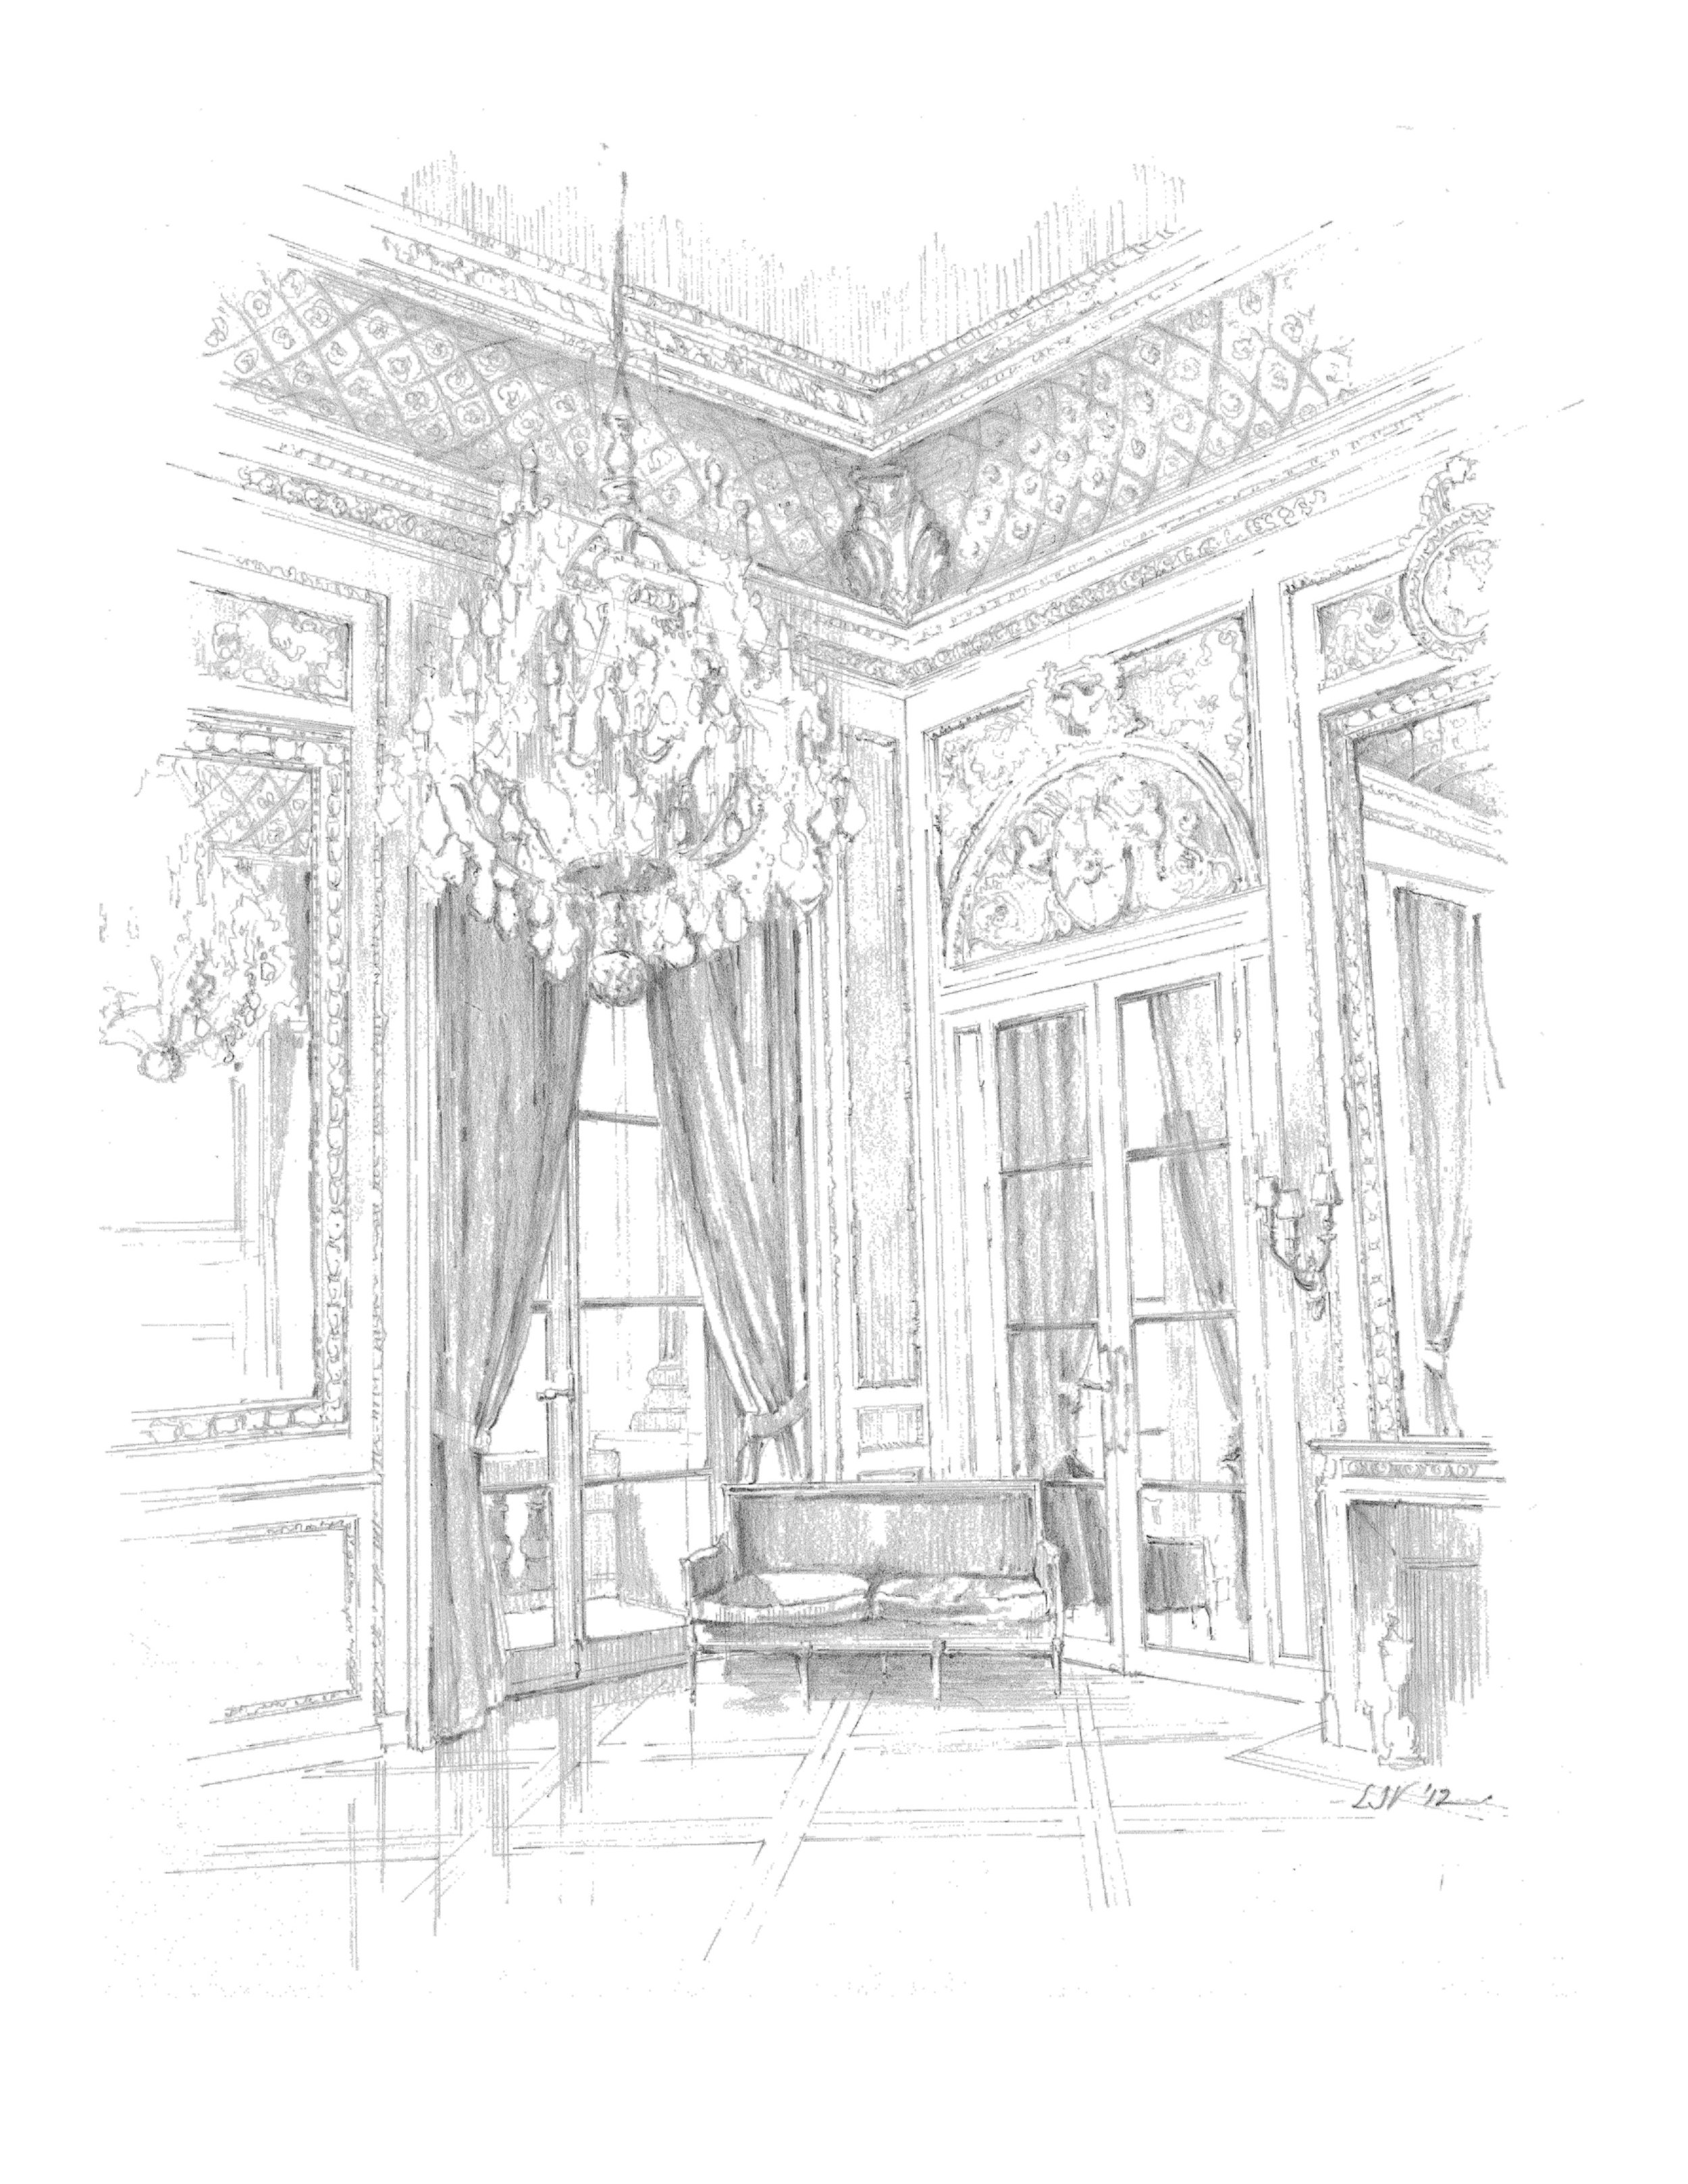 The Hôtel de Crillon, salon on the second floor